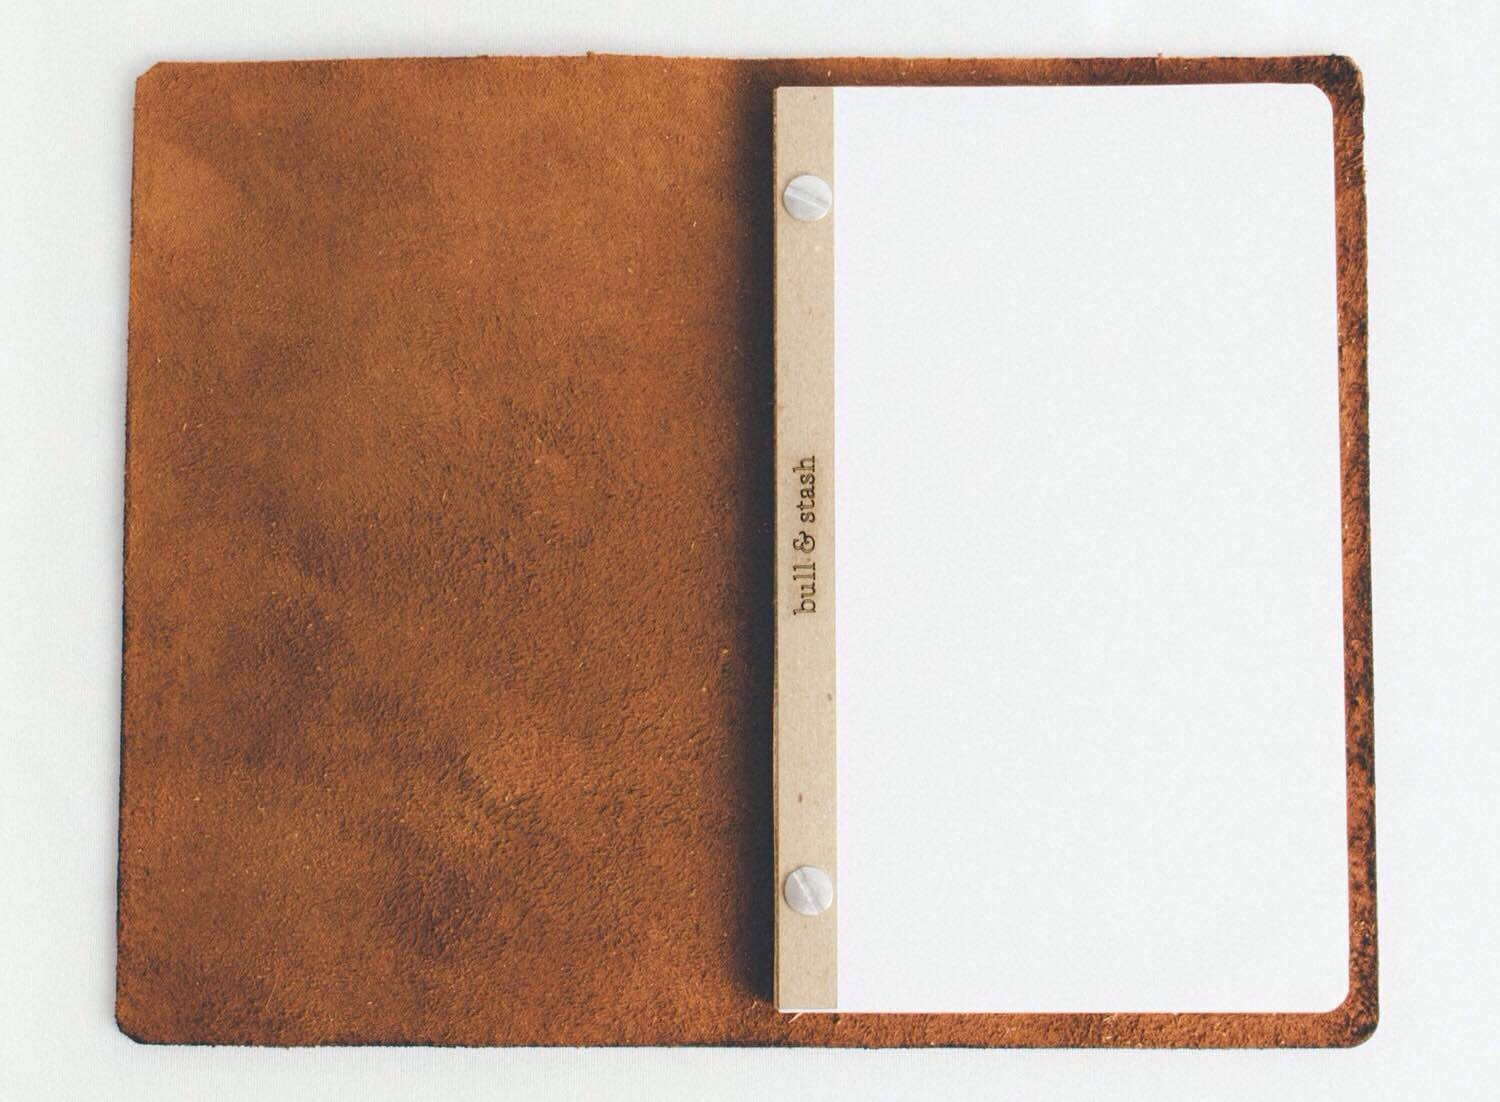 bull-and-stash-leather-wrapped-notebook-2